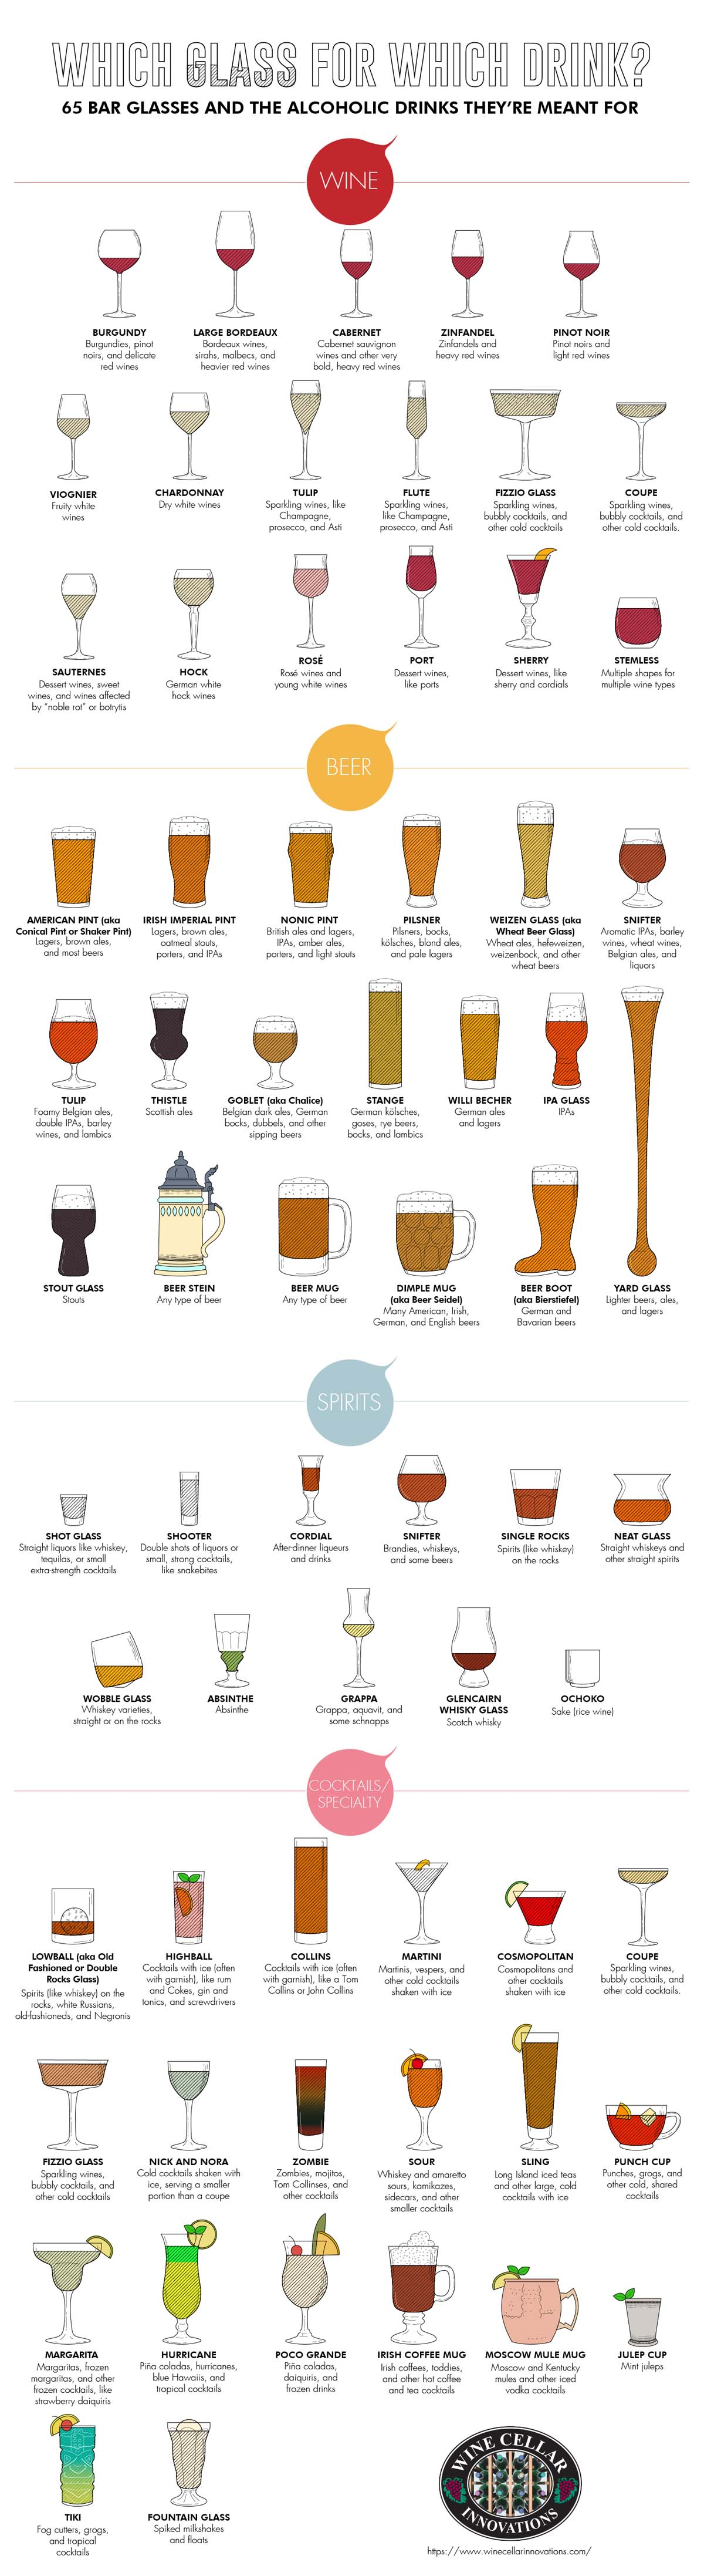 Which Glass for Which Drink? 65 Bar Glasses and the Drinks They're Meant For